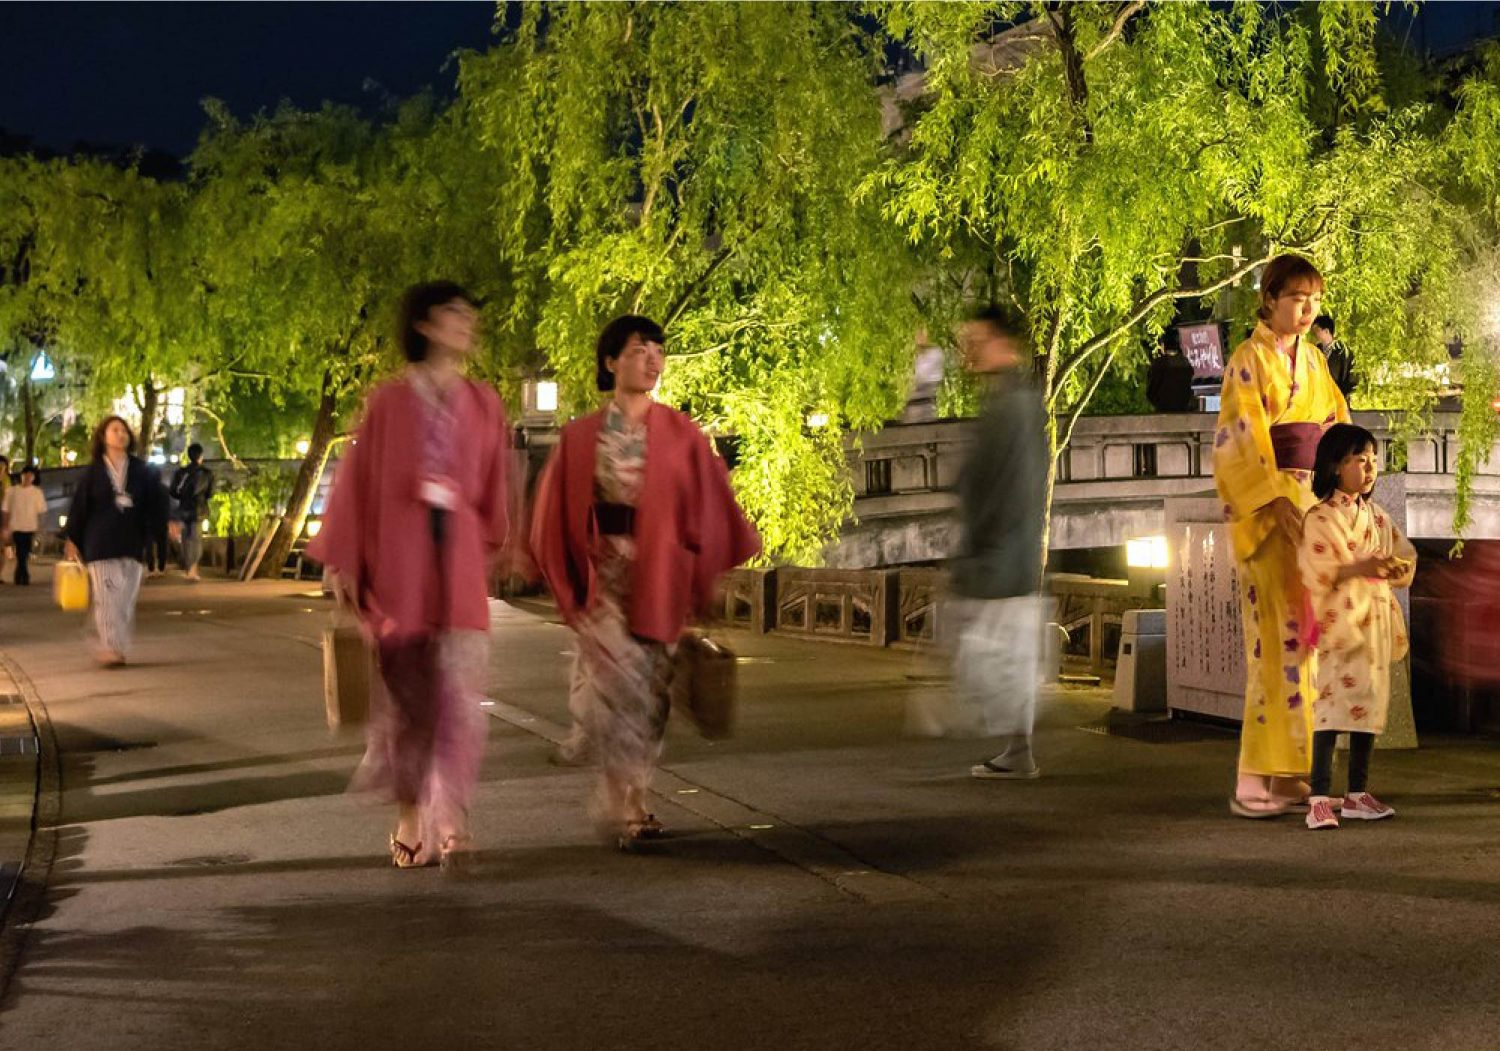 People walking the willow-lined streets of Kinosaki Onsen in their colorful Yukata at night